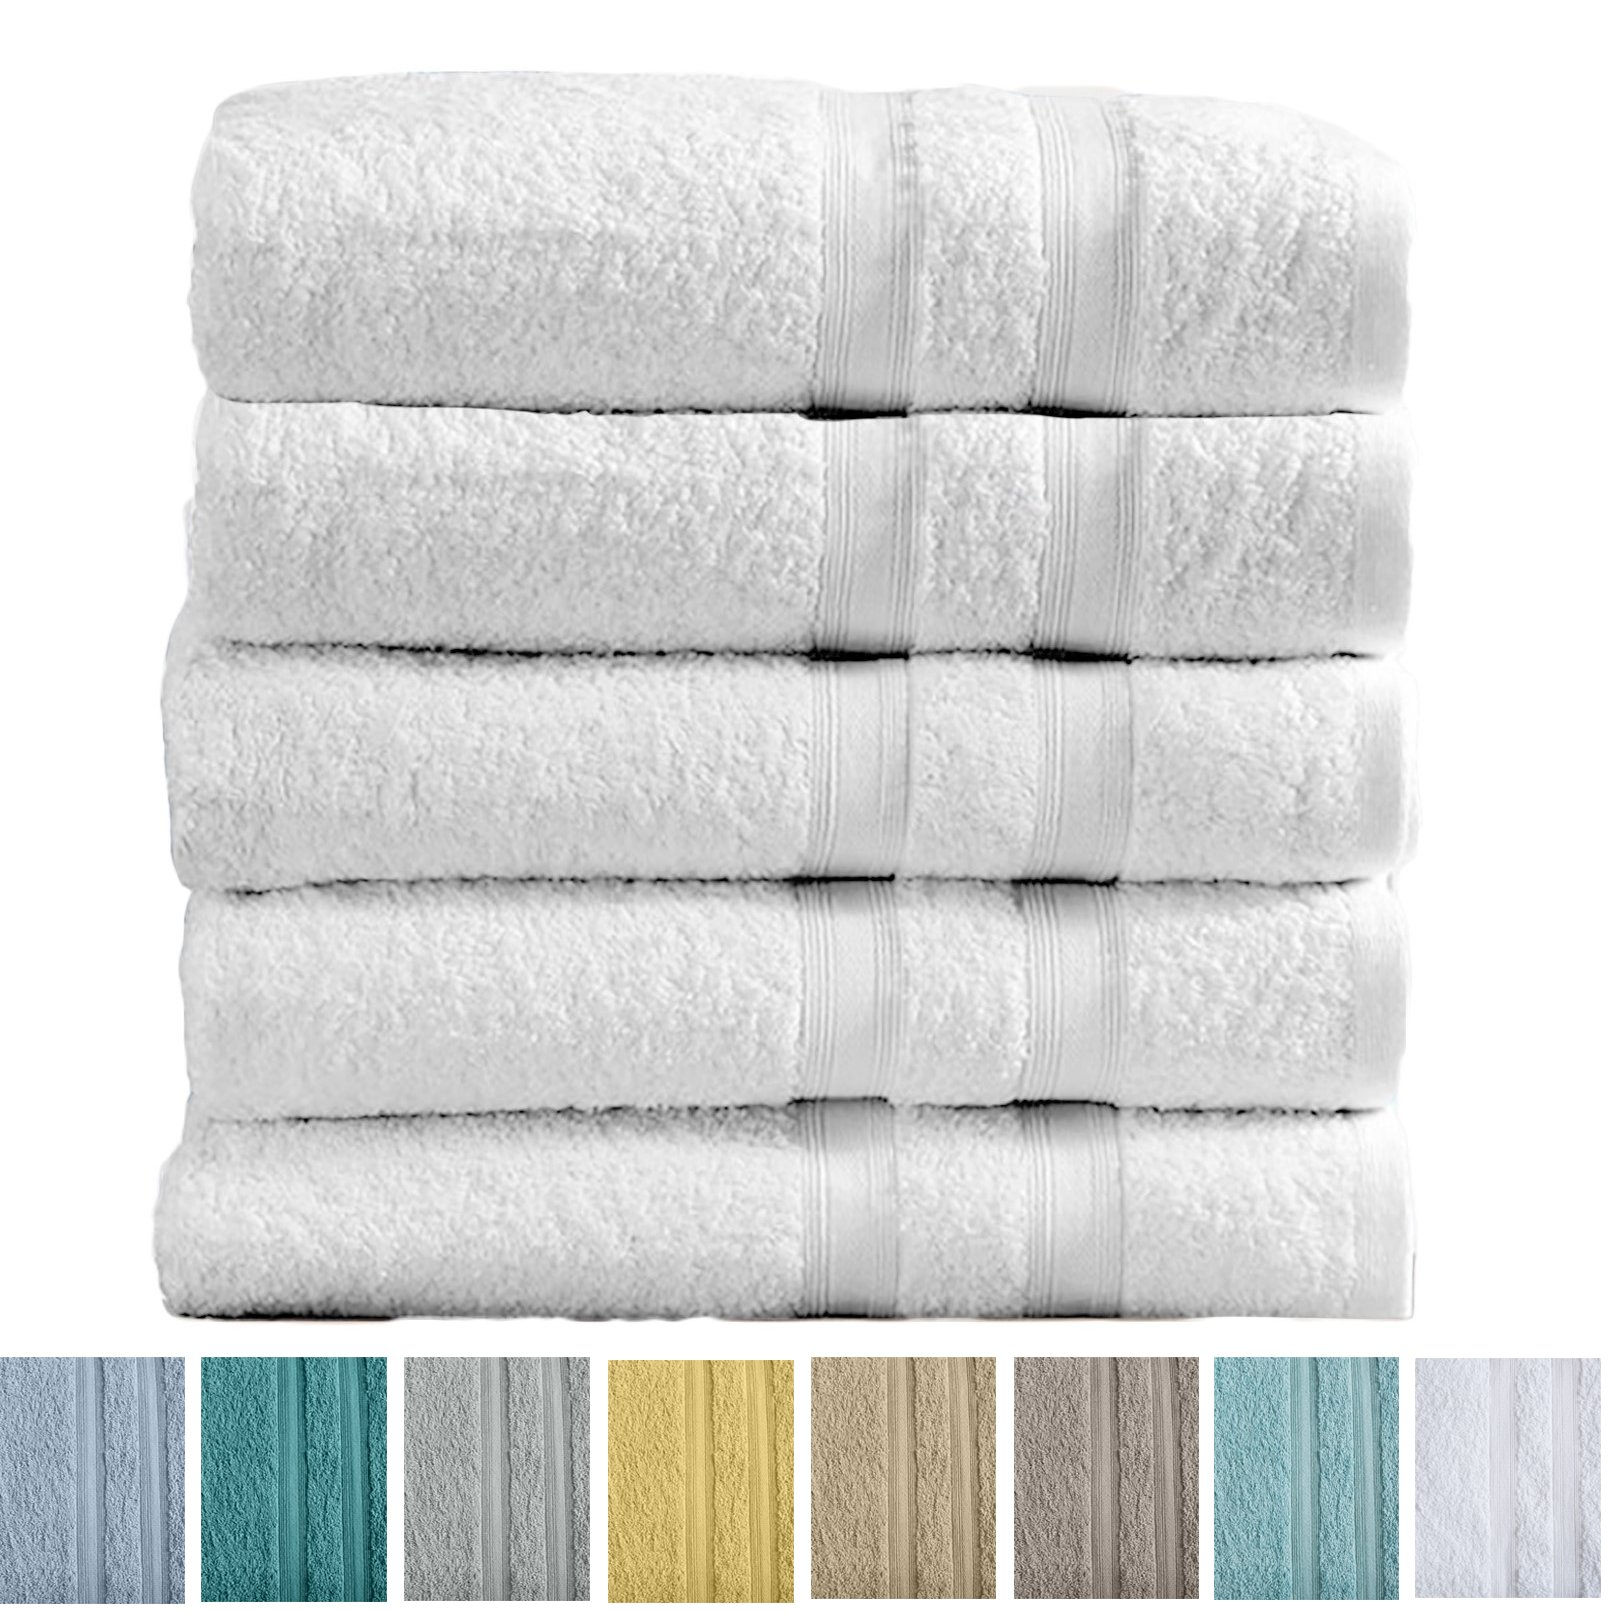 5-Pack Premium 100% Cotton Bath Towel Set (28 x 52 inch) Multipack For Home Spa Pool Gym Use. Quick-Drying and Extra Absorbent. Emelia Collection. (White)